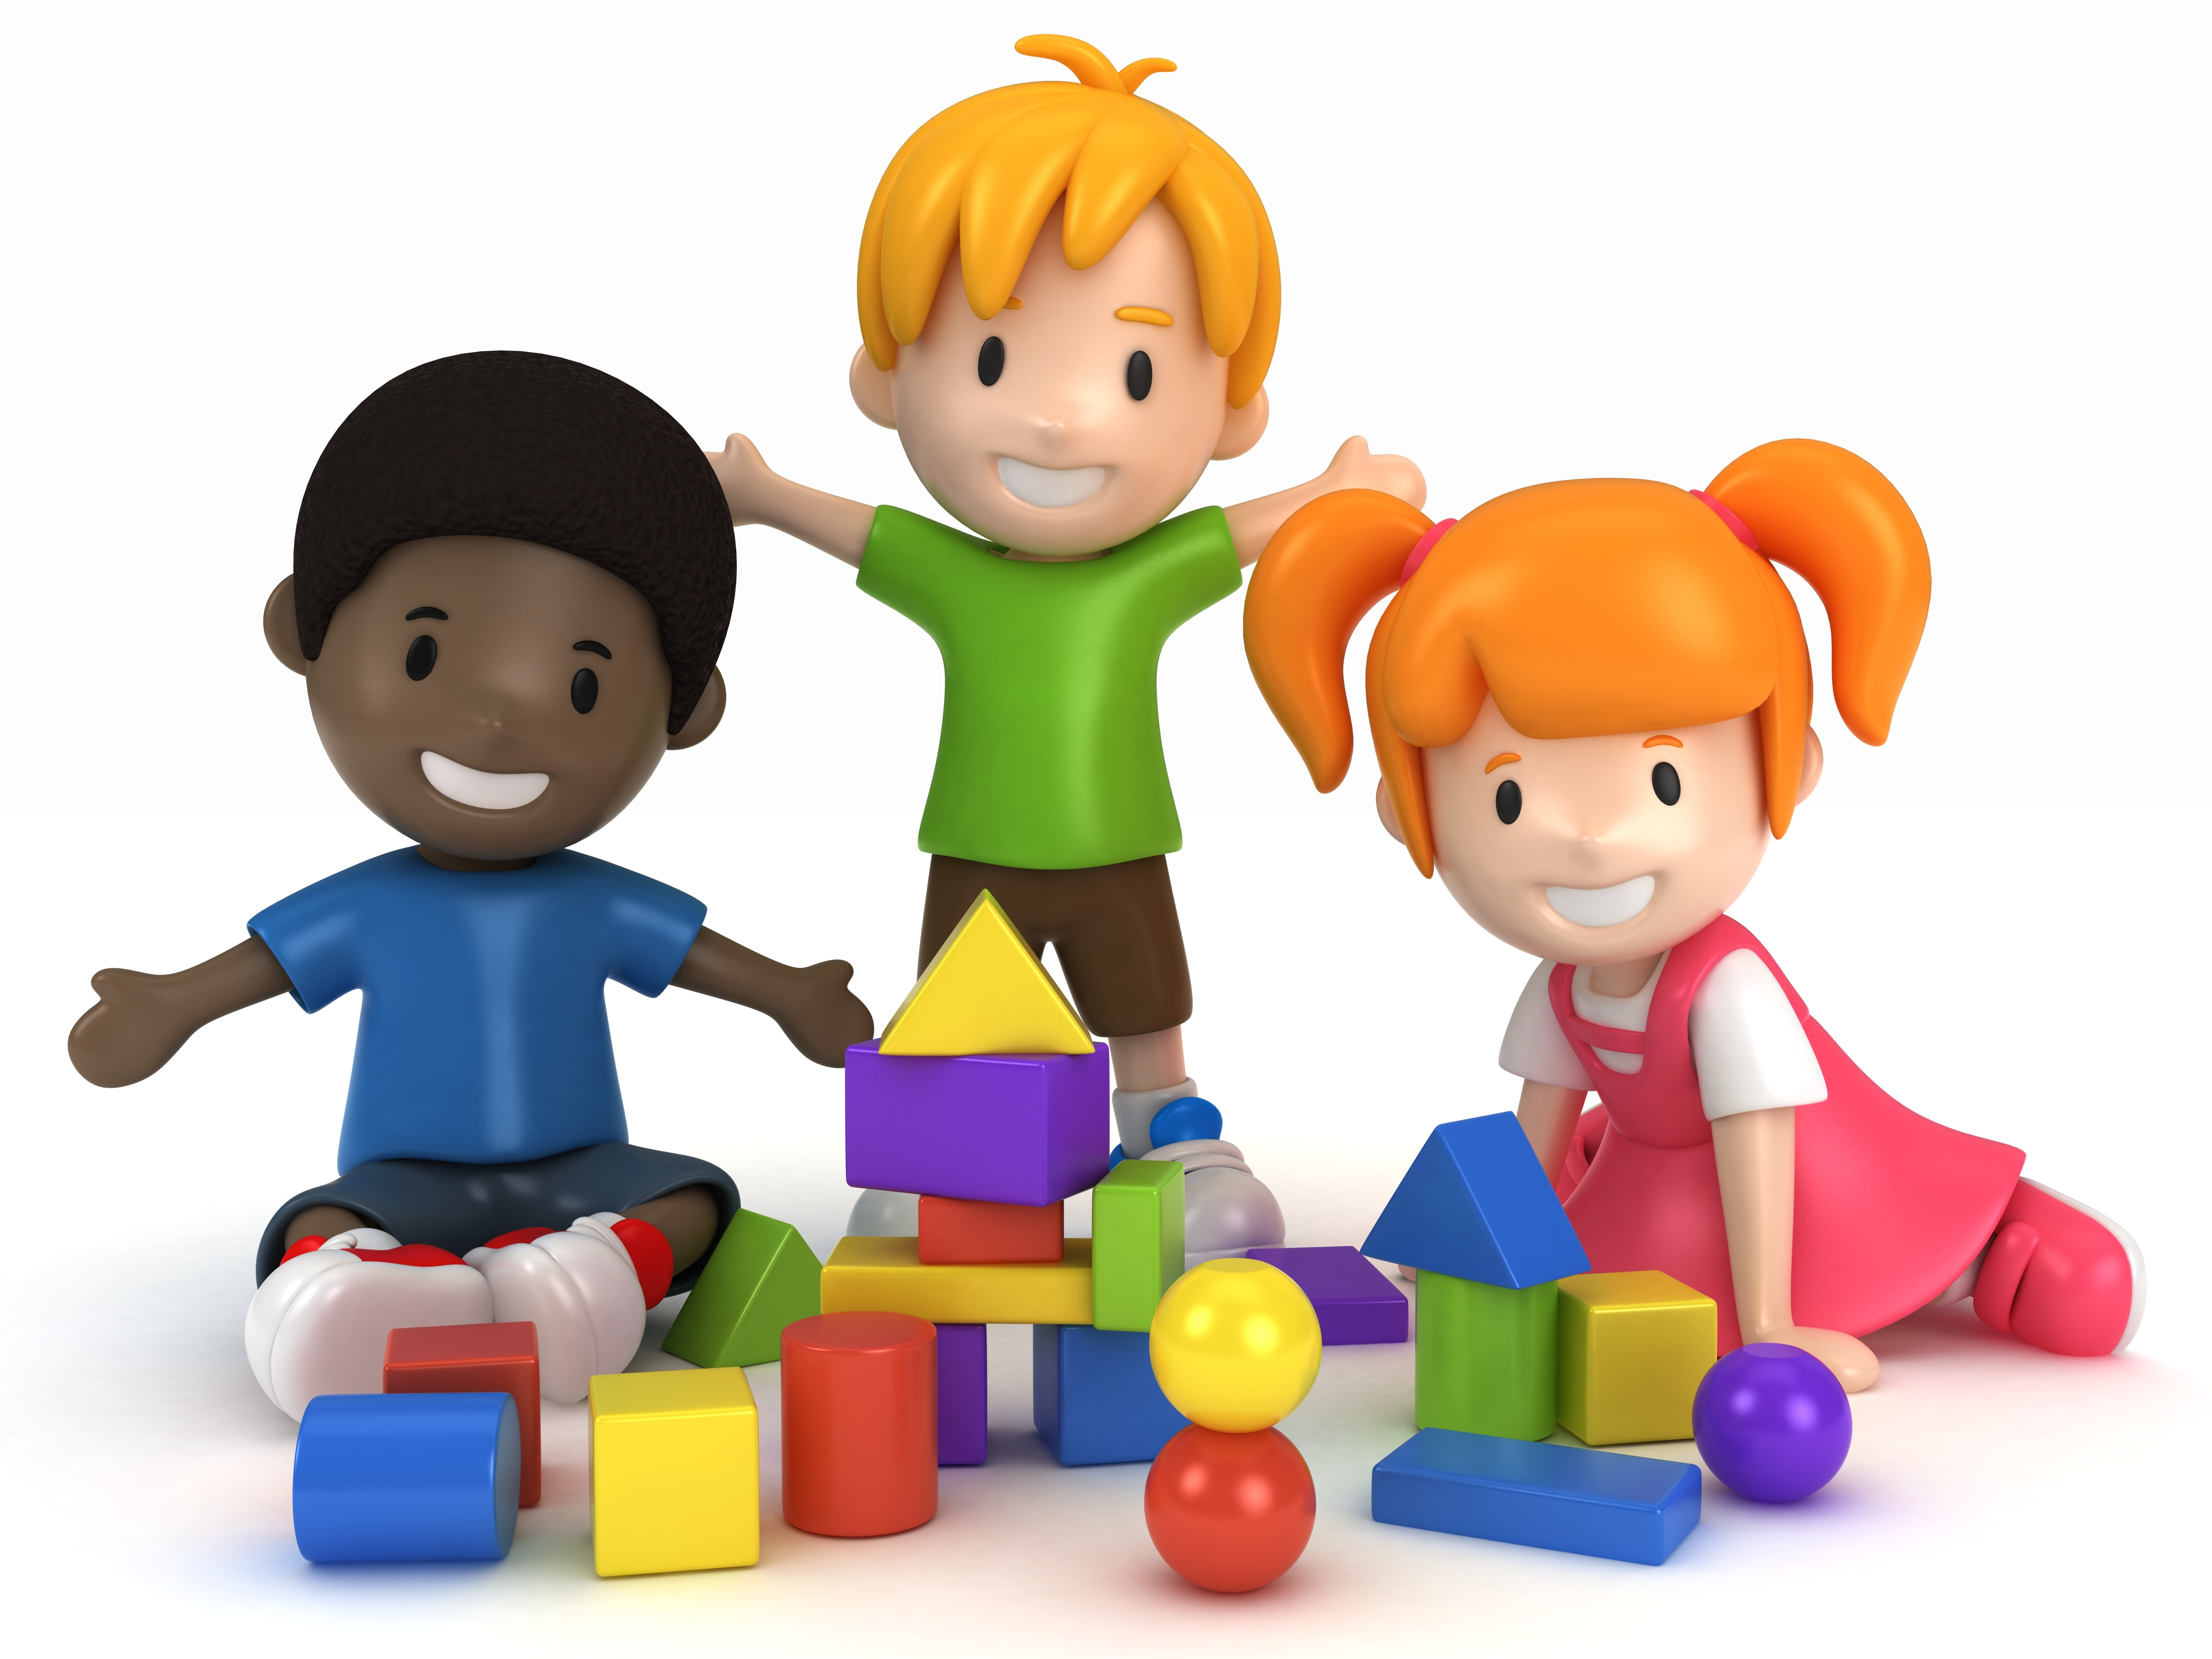 Free Building Blocks Picture, Download Free Clip Art, Free.